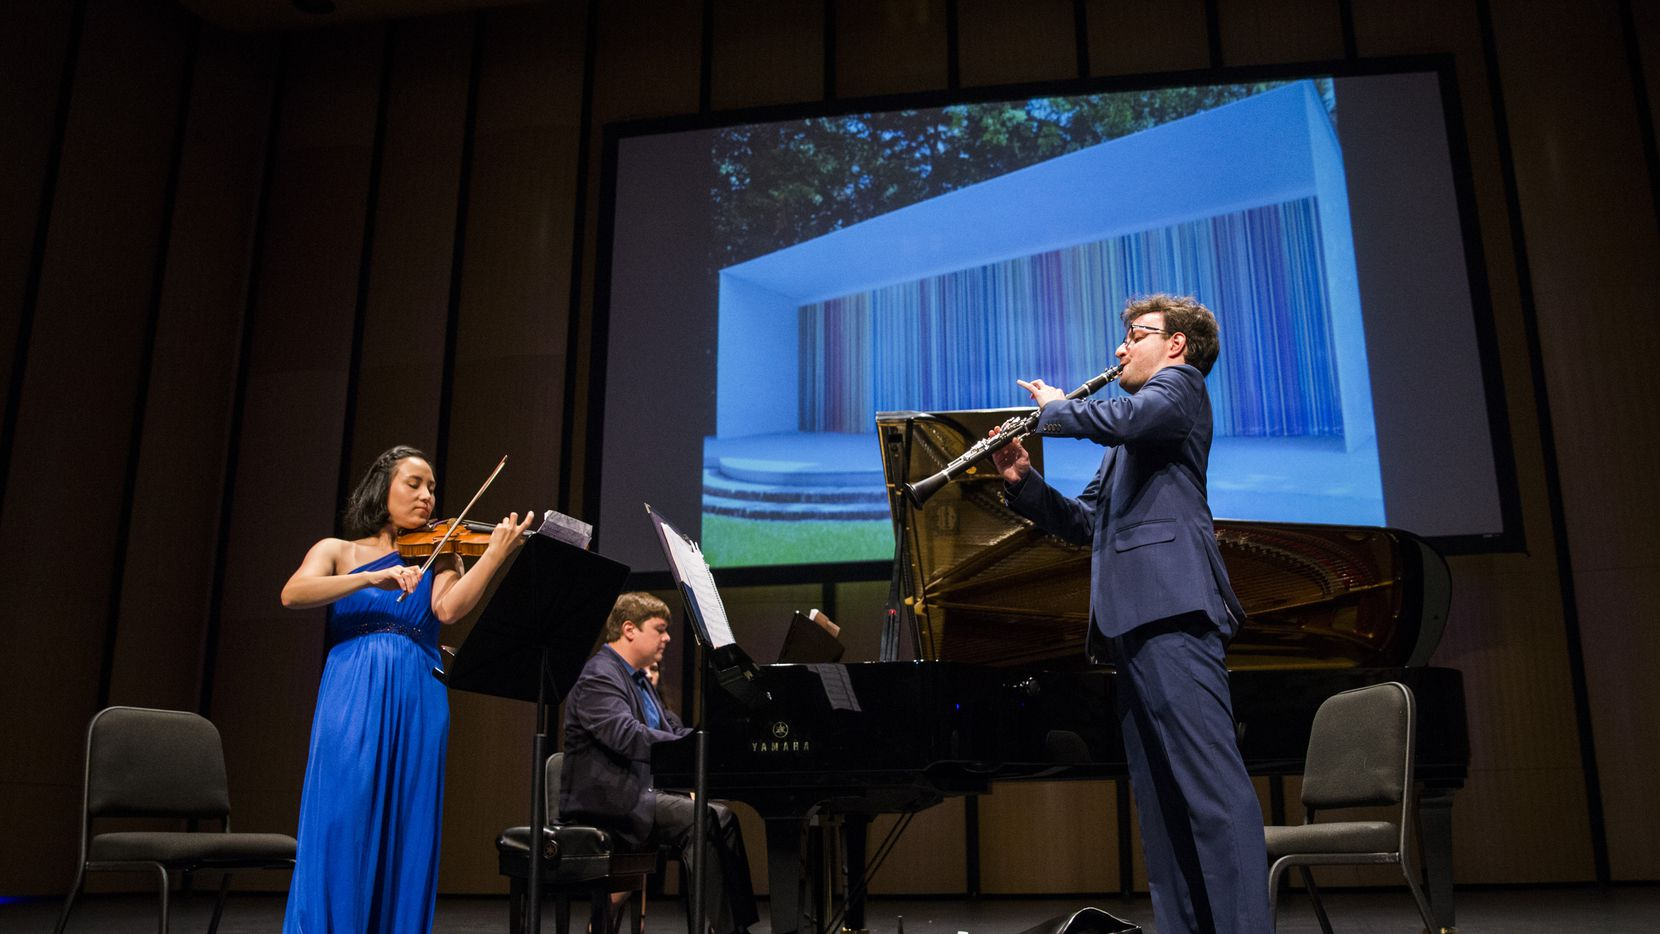 Violinist Grace Kang Wollett, pianist Mikhail Berestnev and clarinetist Danny Goldman rehearse under a photo of 'Horizons,' artwork by Ian Davenport, before a Basically Beethoven Festival concert on July 7, 2019 at Moody Performance Hall in Dallas.